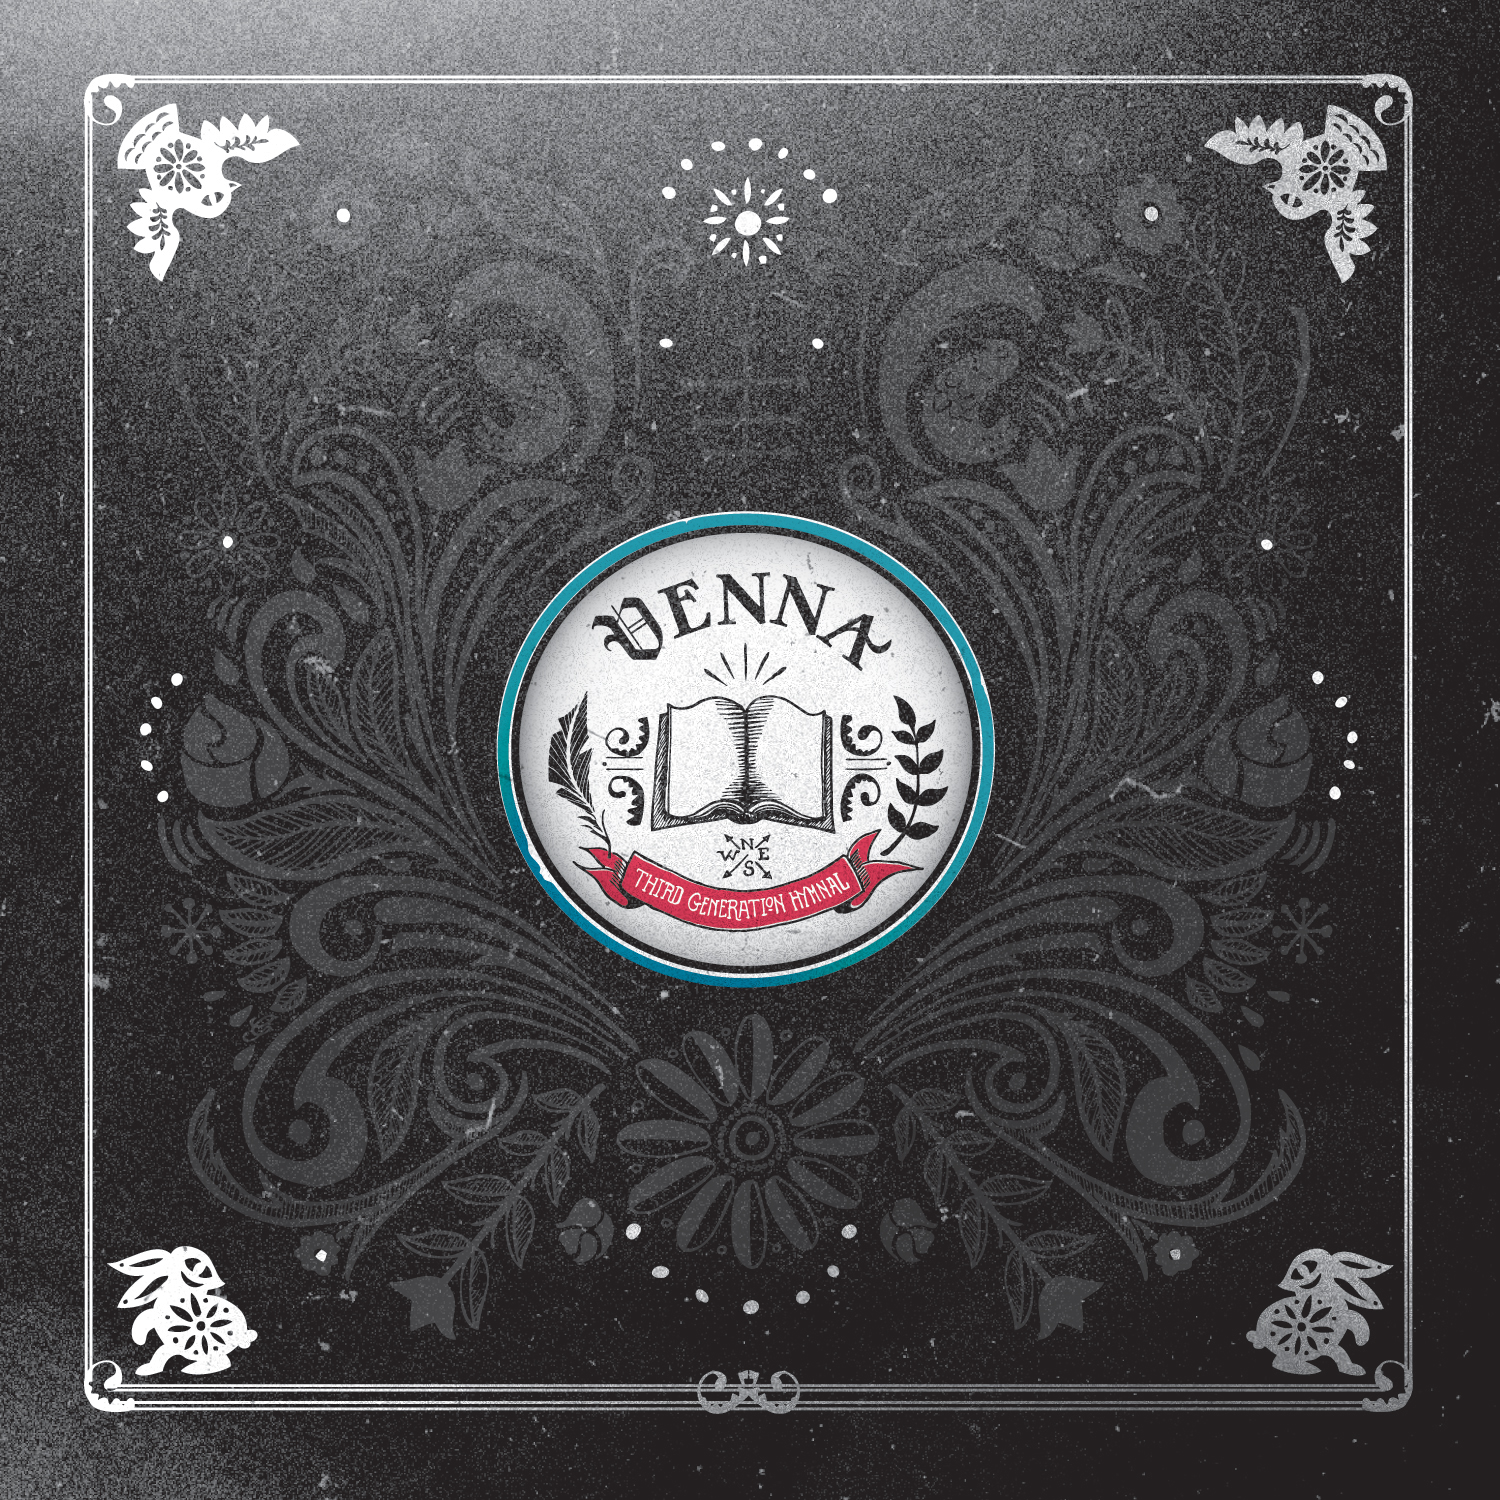 Venna - Third Generation Hymnal VINYL LP